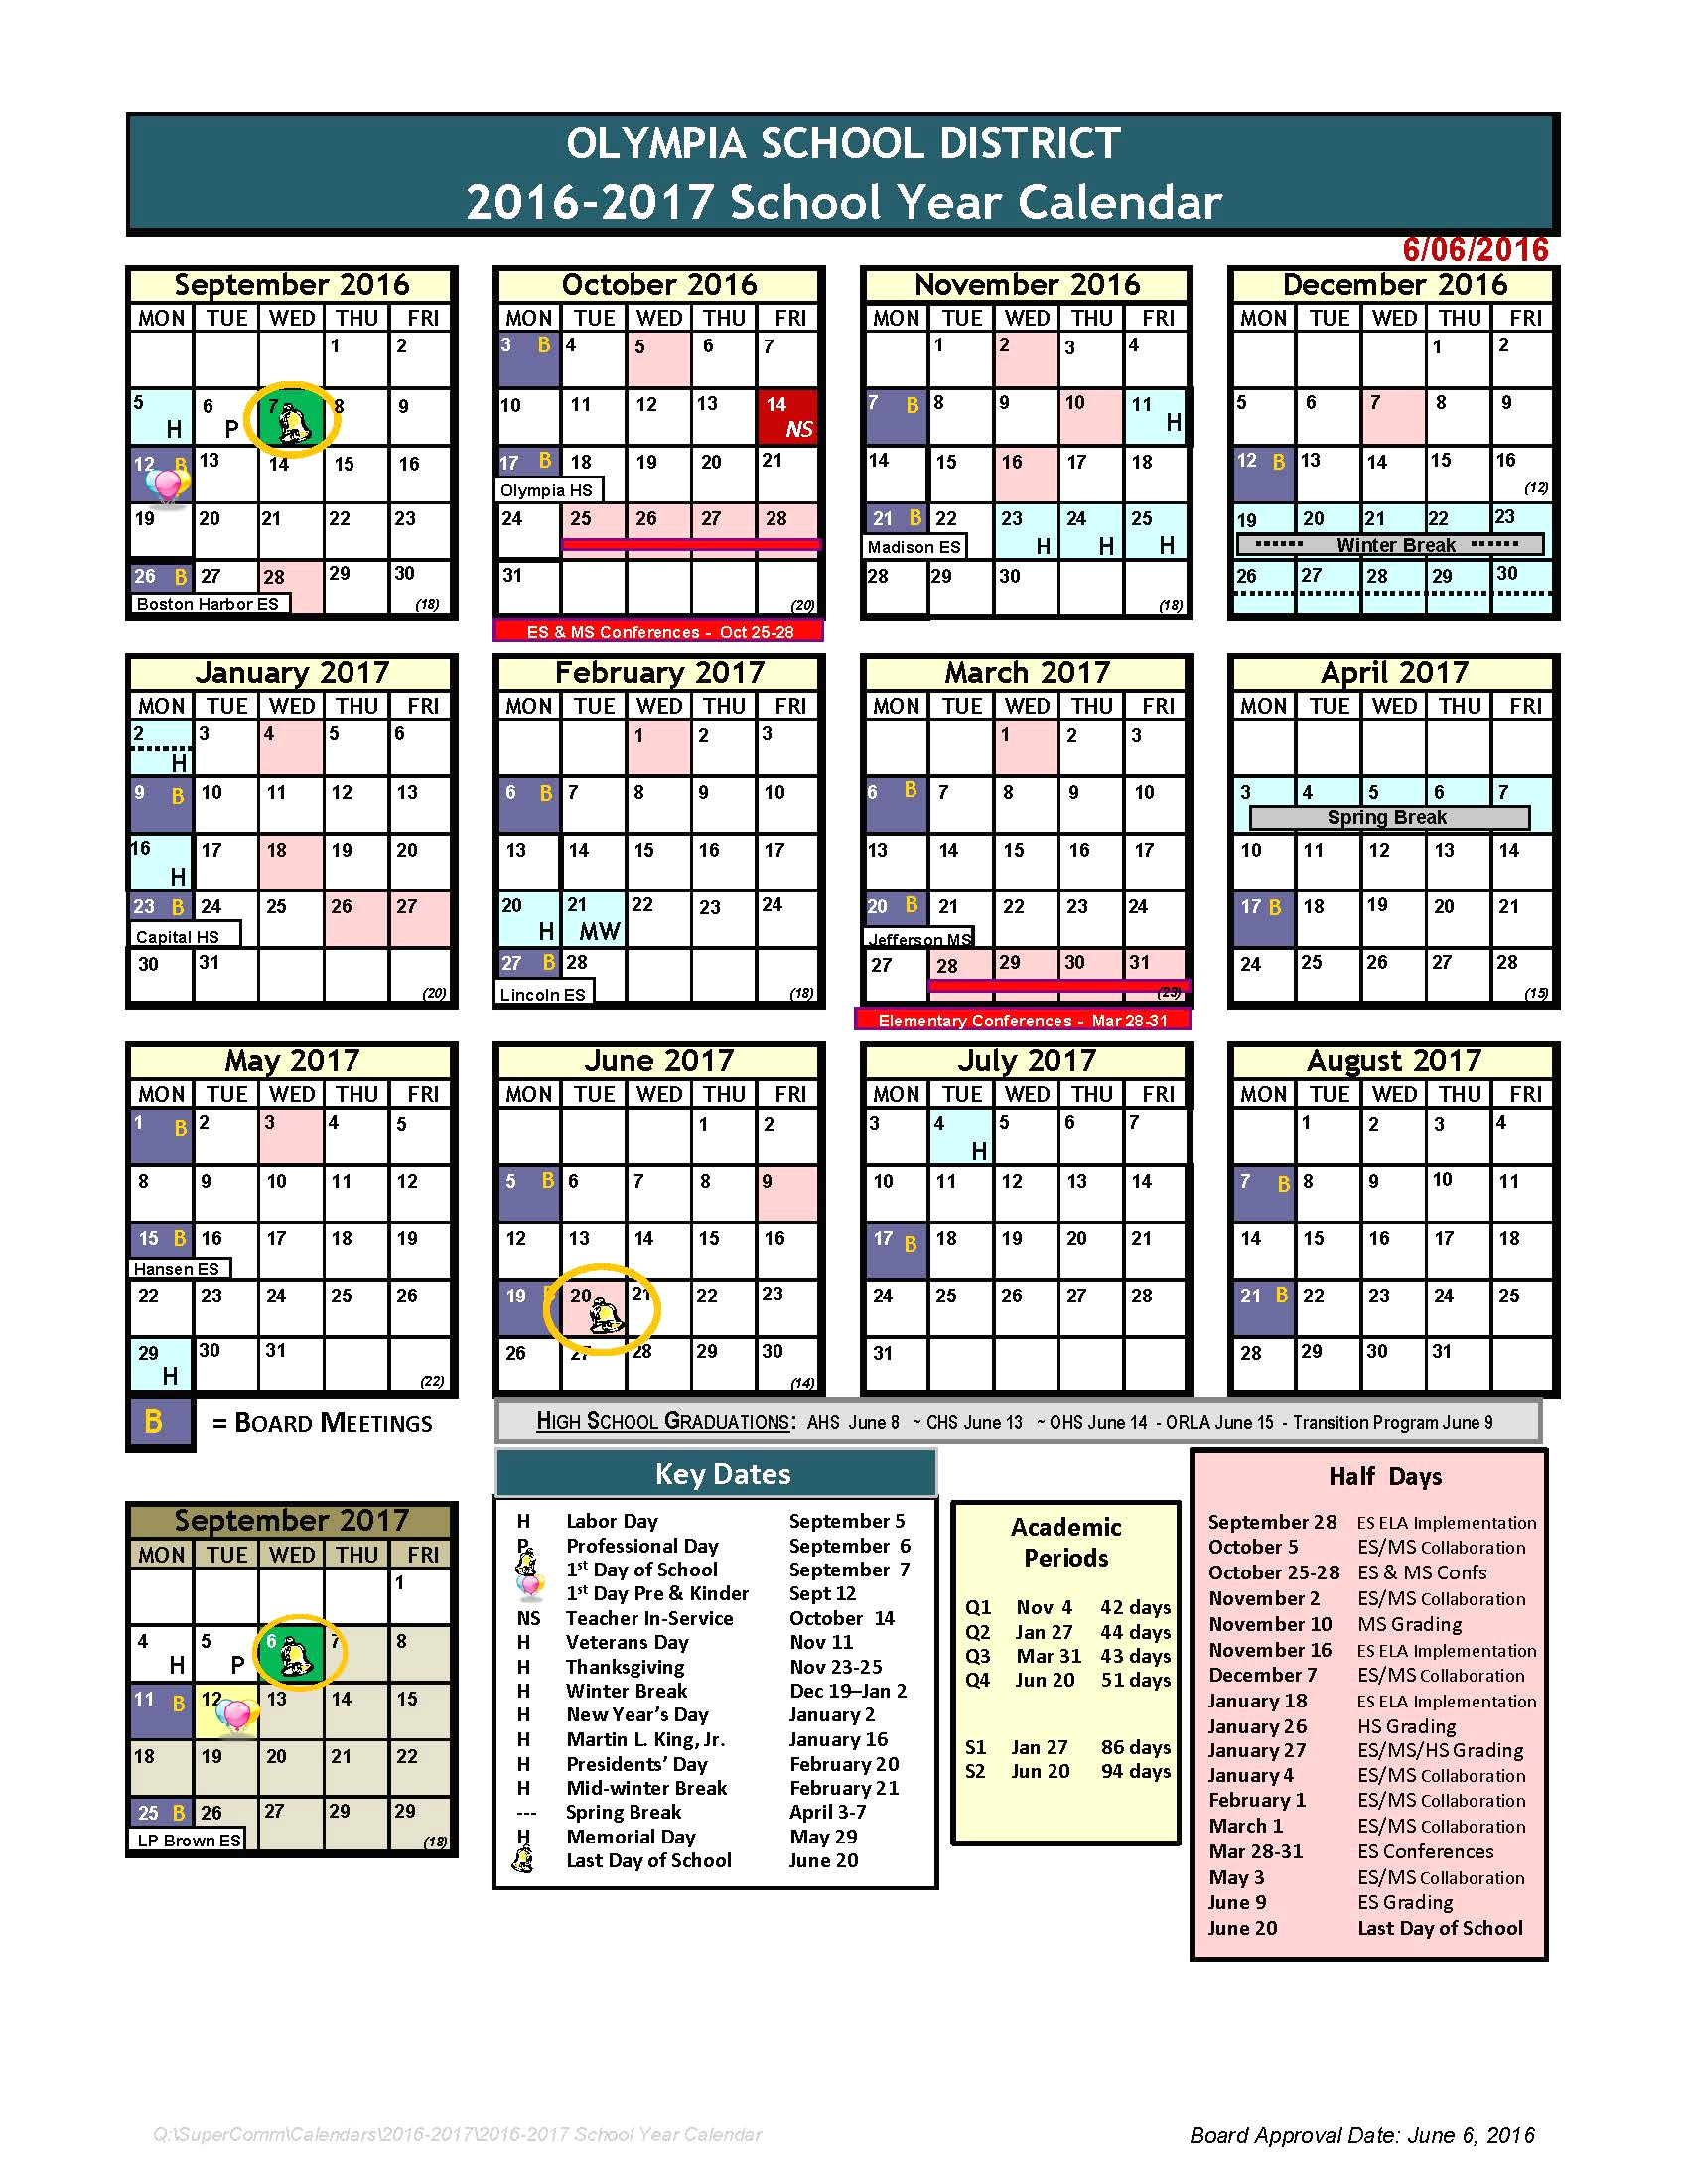 Elegant 51 Illustration Fwisd Calendar 2019 2020 | Laboole intended for Fort Worth Isd Calendar